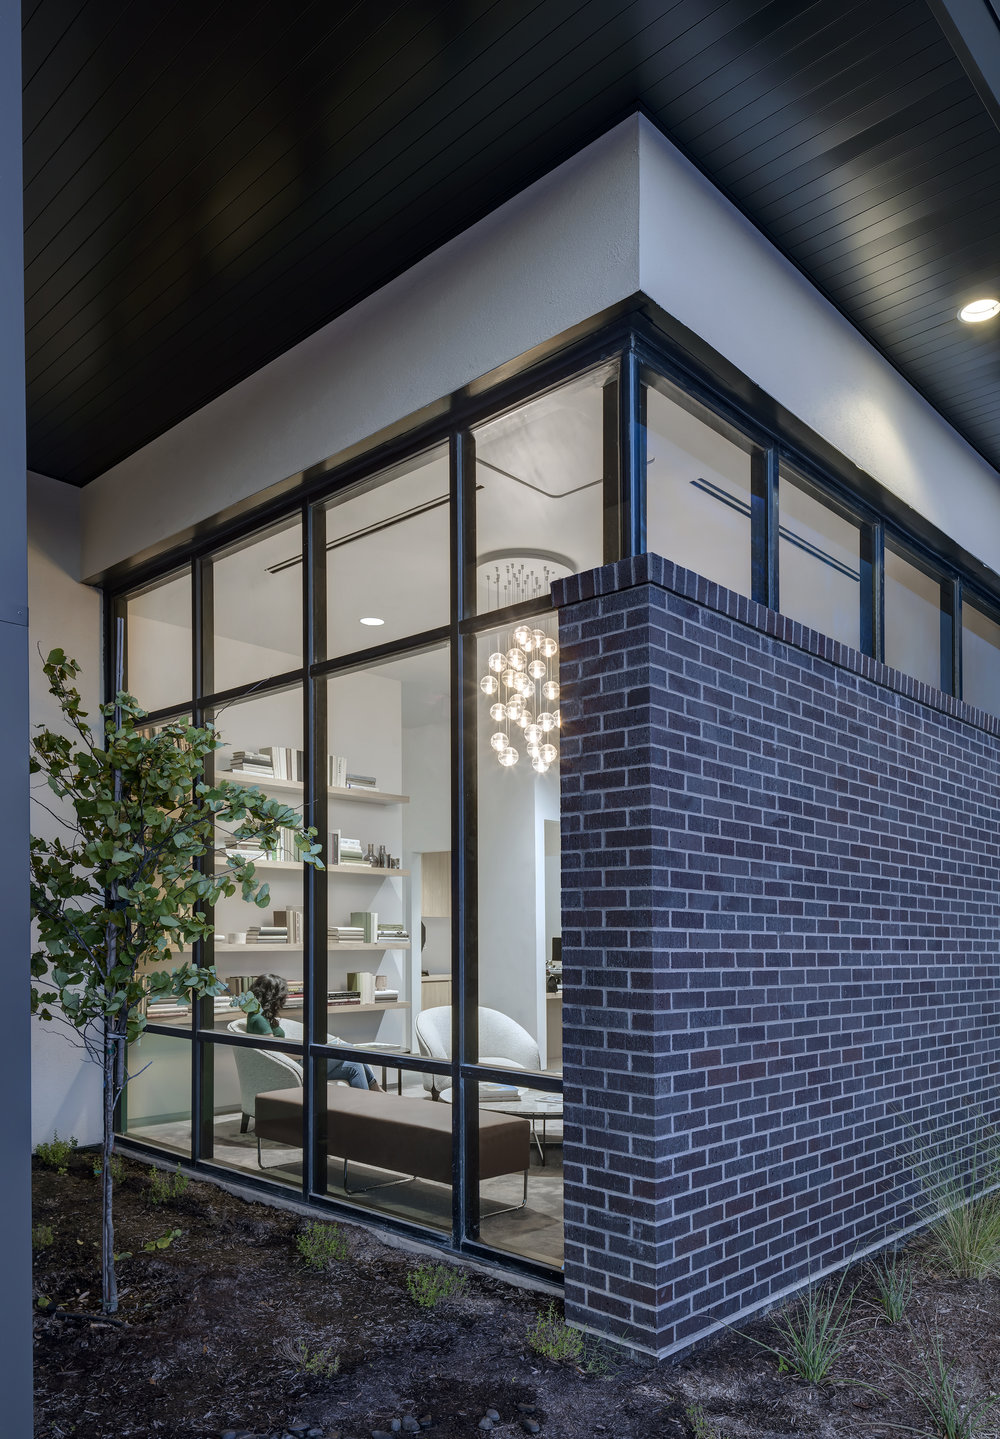 Westlake Dermatology Cedar Park by Matt Fajkus Architecture_exterior photo 5 by Charles Davis Smith.jpg